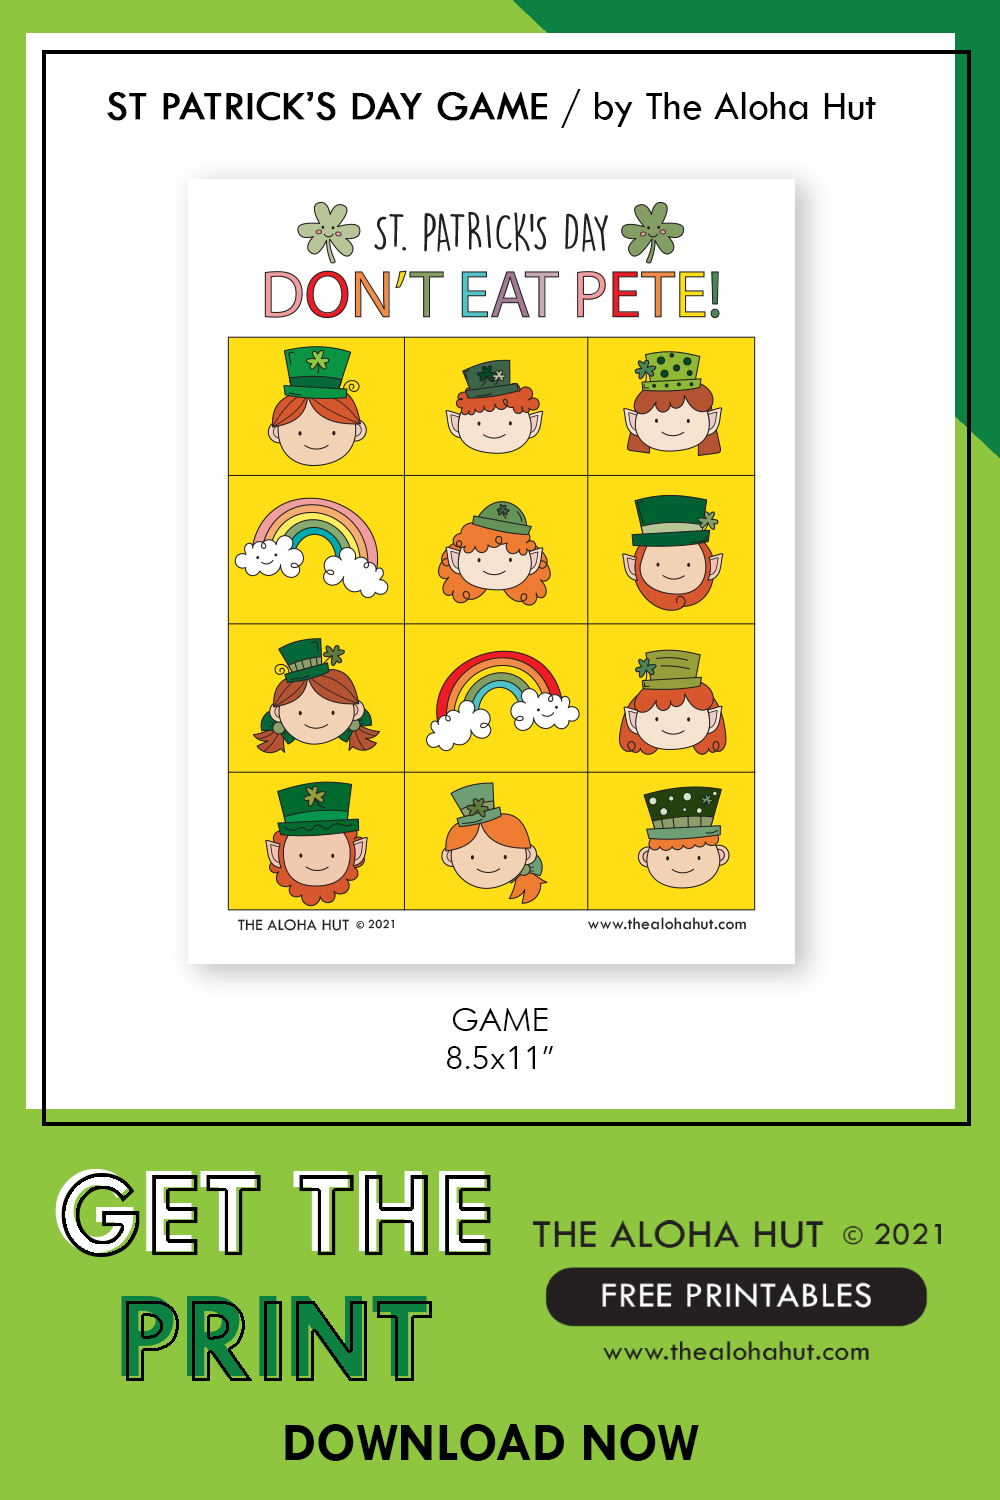 Free Printable St Patrick's Game Don't Eat Pete by the Aloha Hut